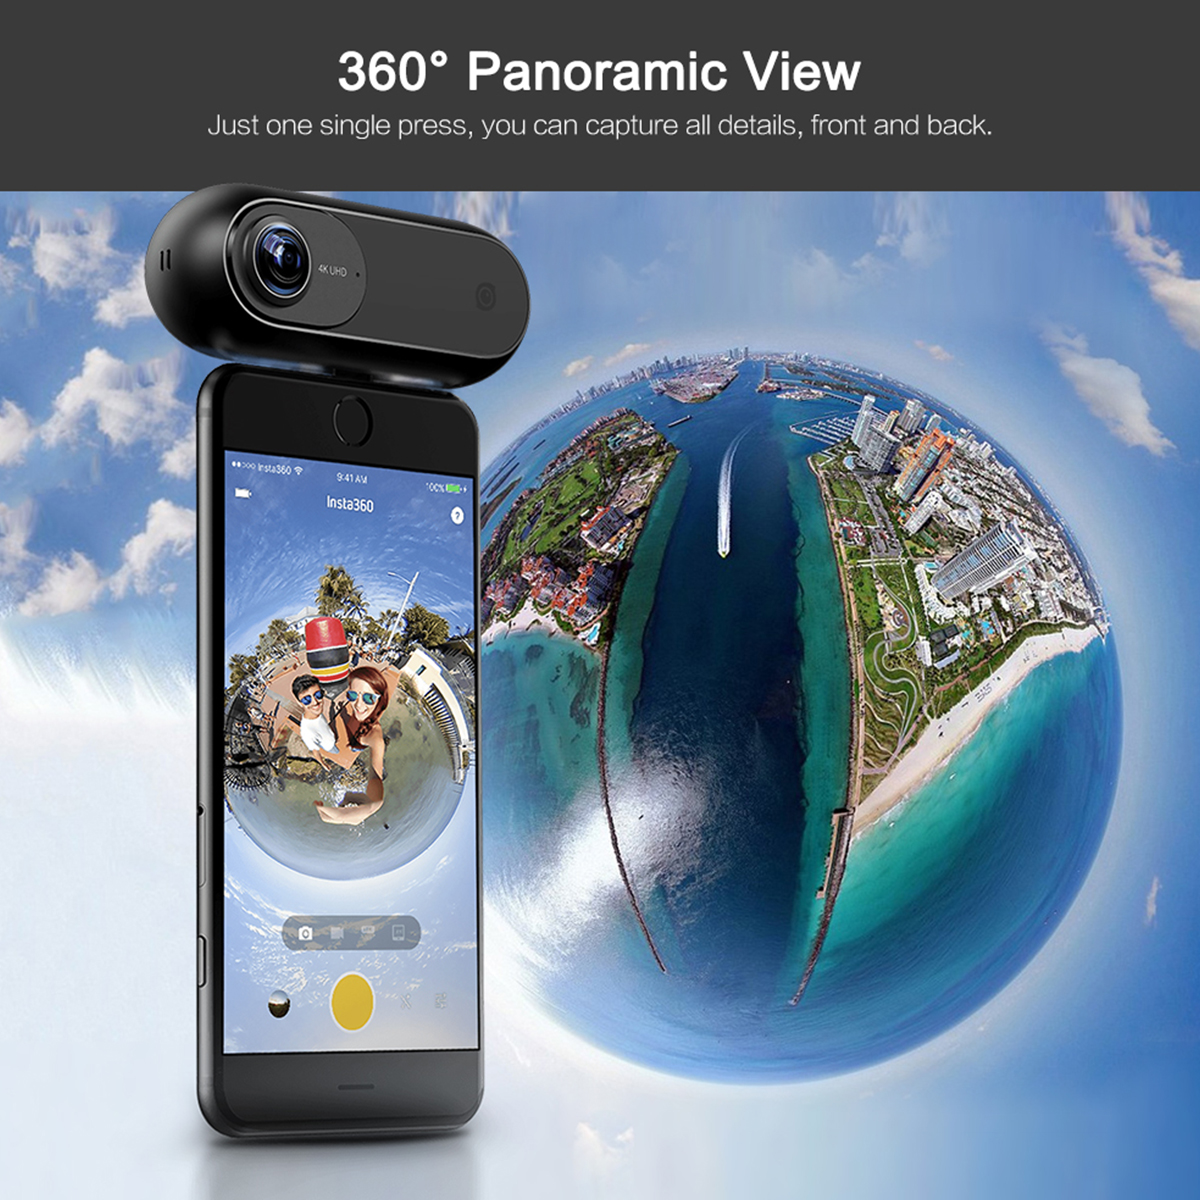 2018 Insta360 ONE 4K 360 Panoramic Camera VR Video Sport Action Camera 24MP Bullet Time 6-Axis Gyroscope Webcast for iPhone Cam insta360 one 4k 360 vr video action camera insta 360 sport panoramic 24mp mini camcorders camera